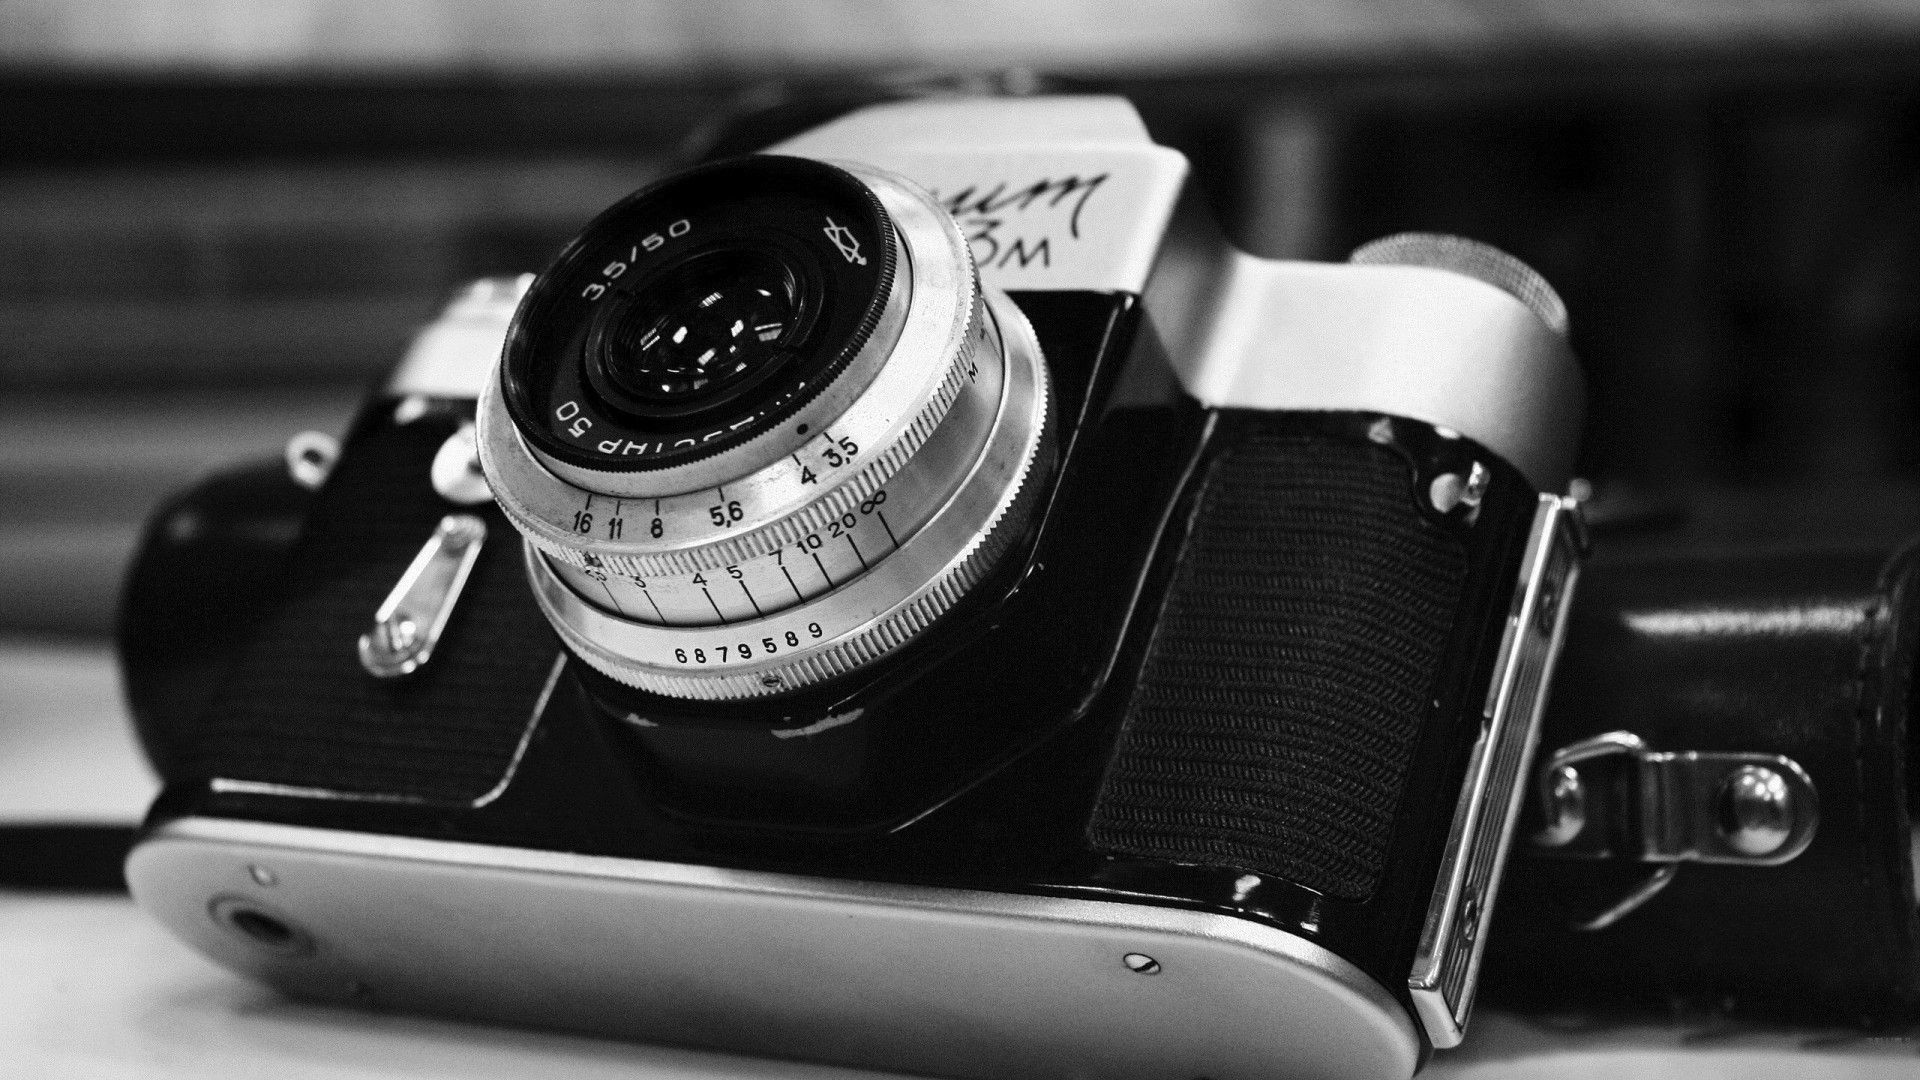 Cool Images Hd Black And White